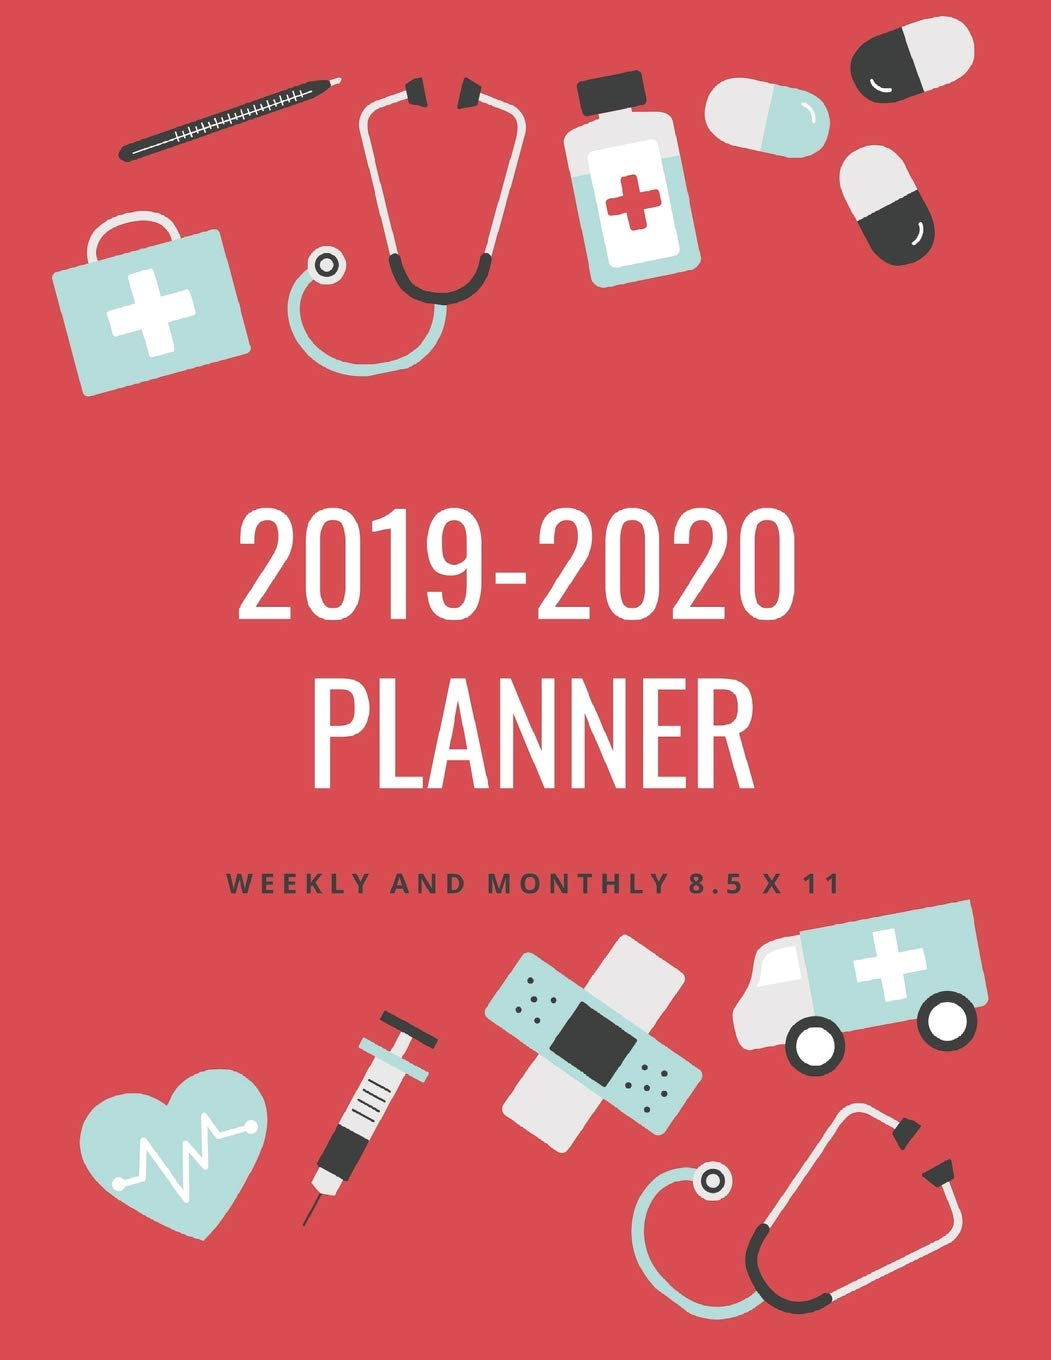 2020 Year In Review.2019 2020 Planner Weekly And Monthly 8 5 X 11 Nurse Theme